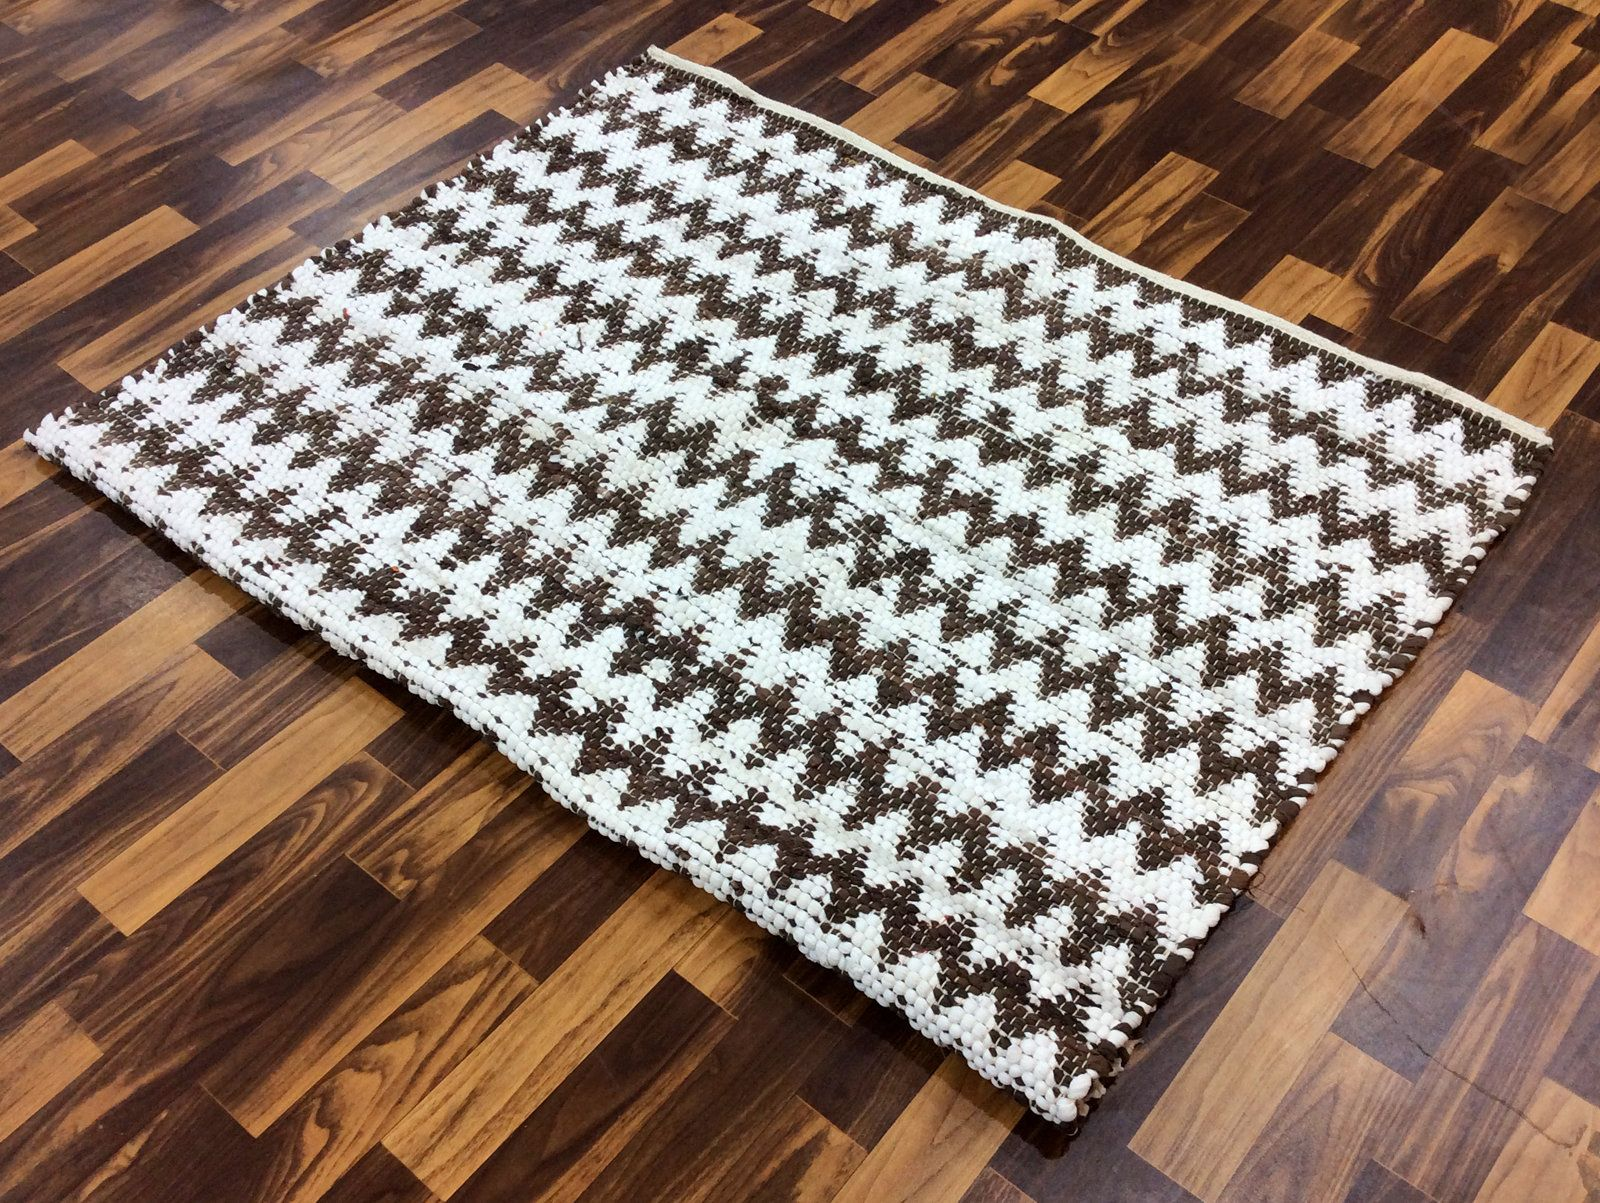 Sisal/Seagrass Area Rugs Indian 4x6 Ft Cotton Area Rug ...